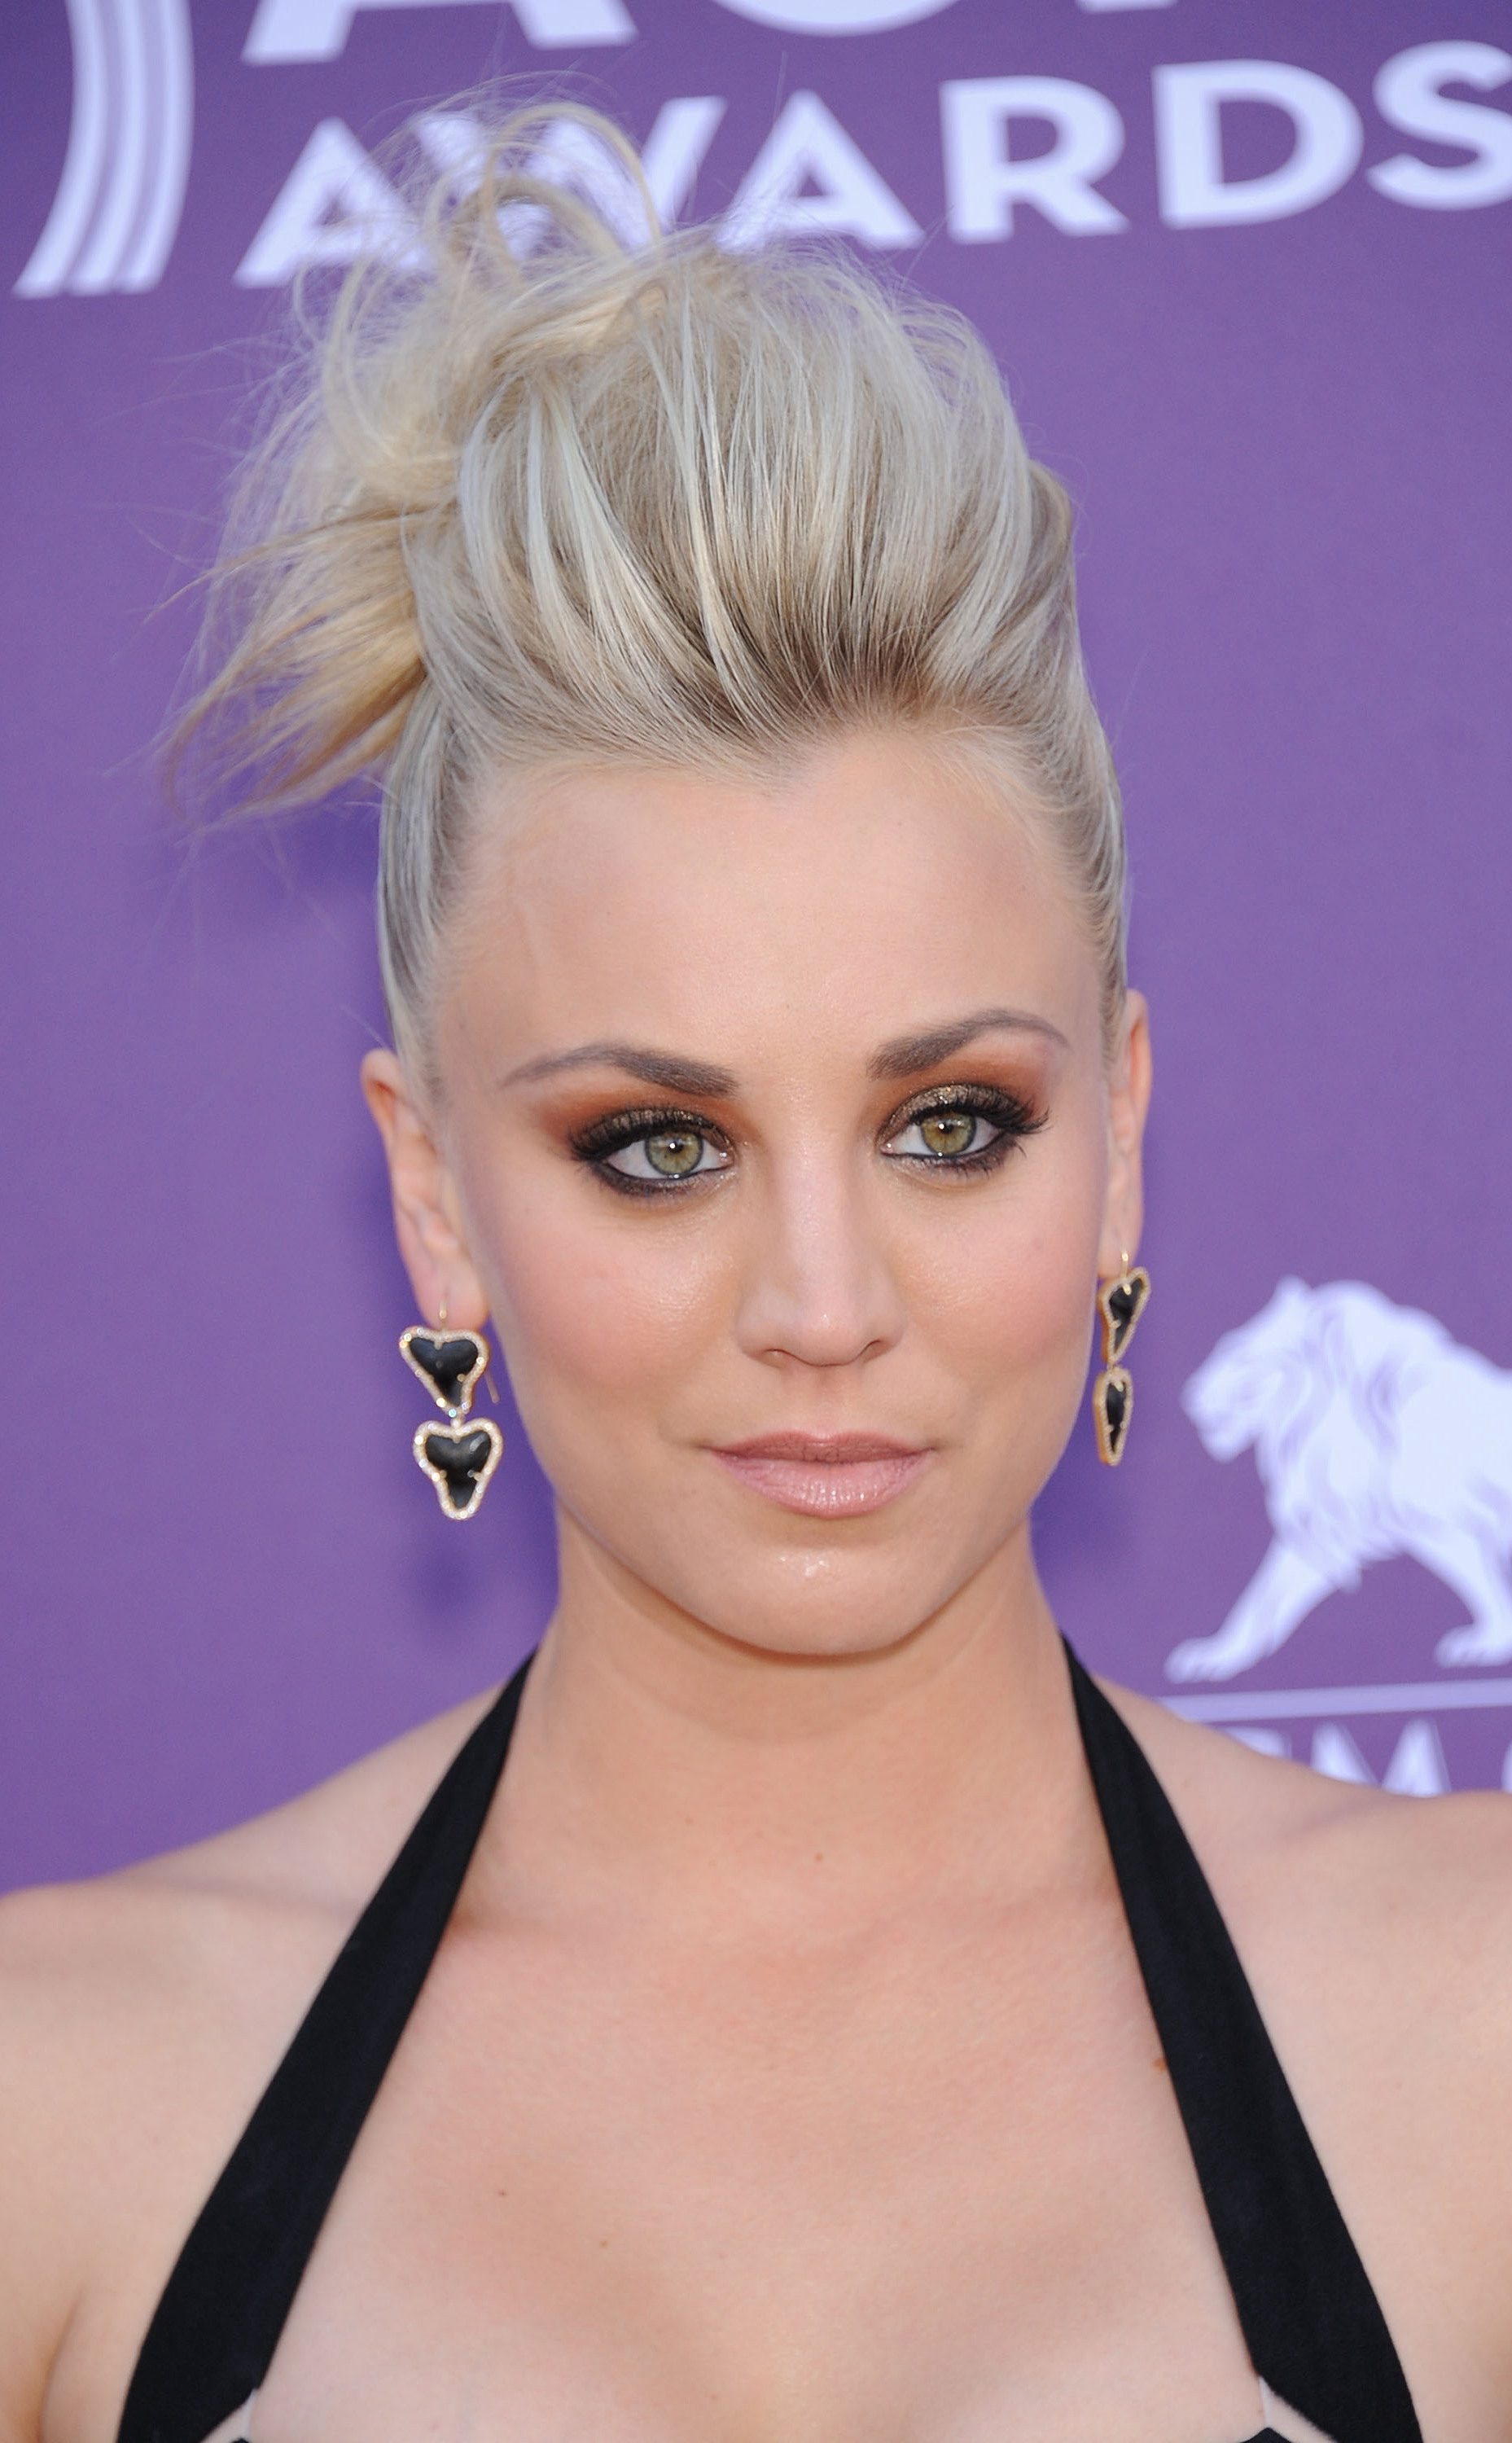 Kaley Cuoco's Mohawk Inspired Updo Hairstyle